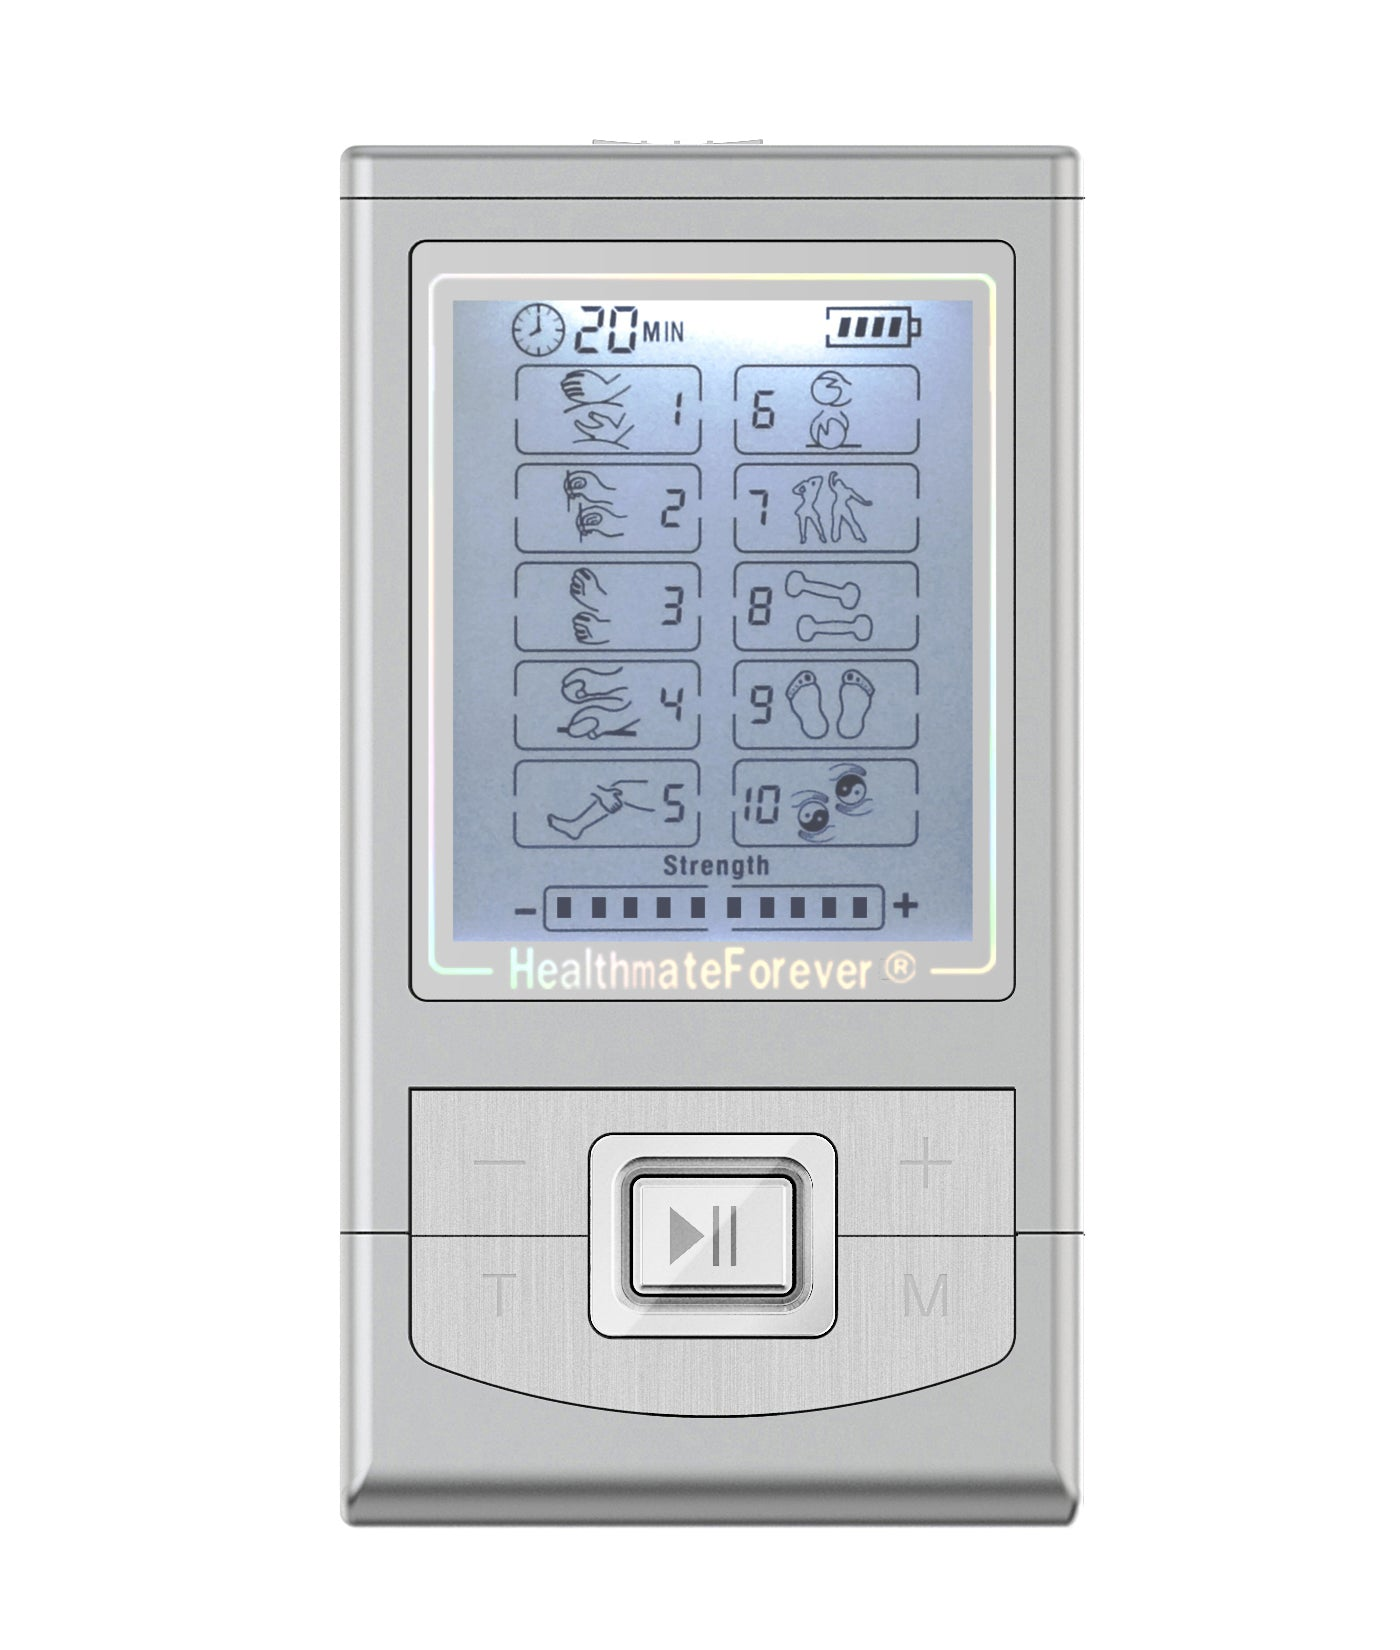 NK10GL TENS Unit & Muscle Stimulator - HealthmateForever